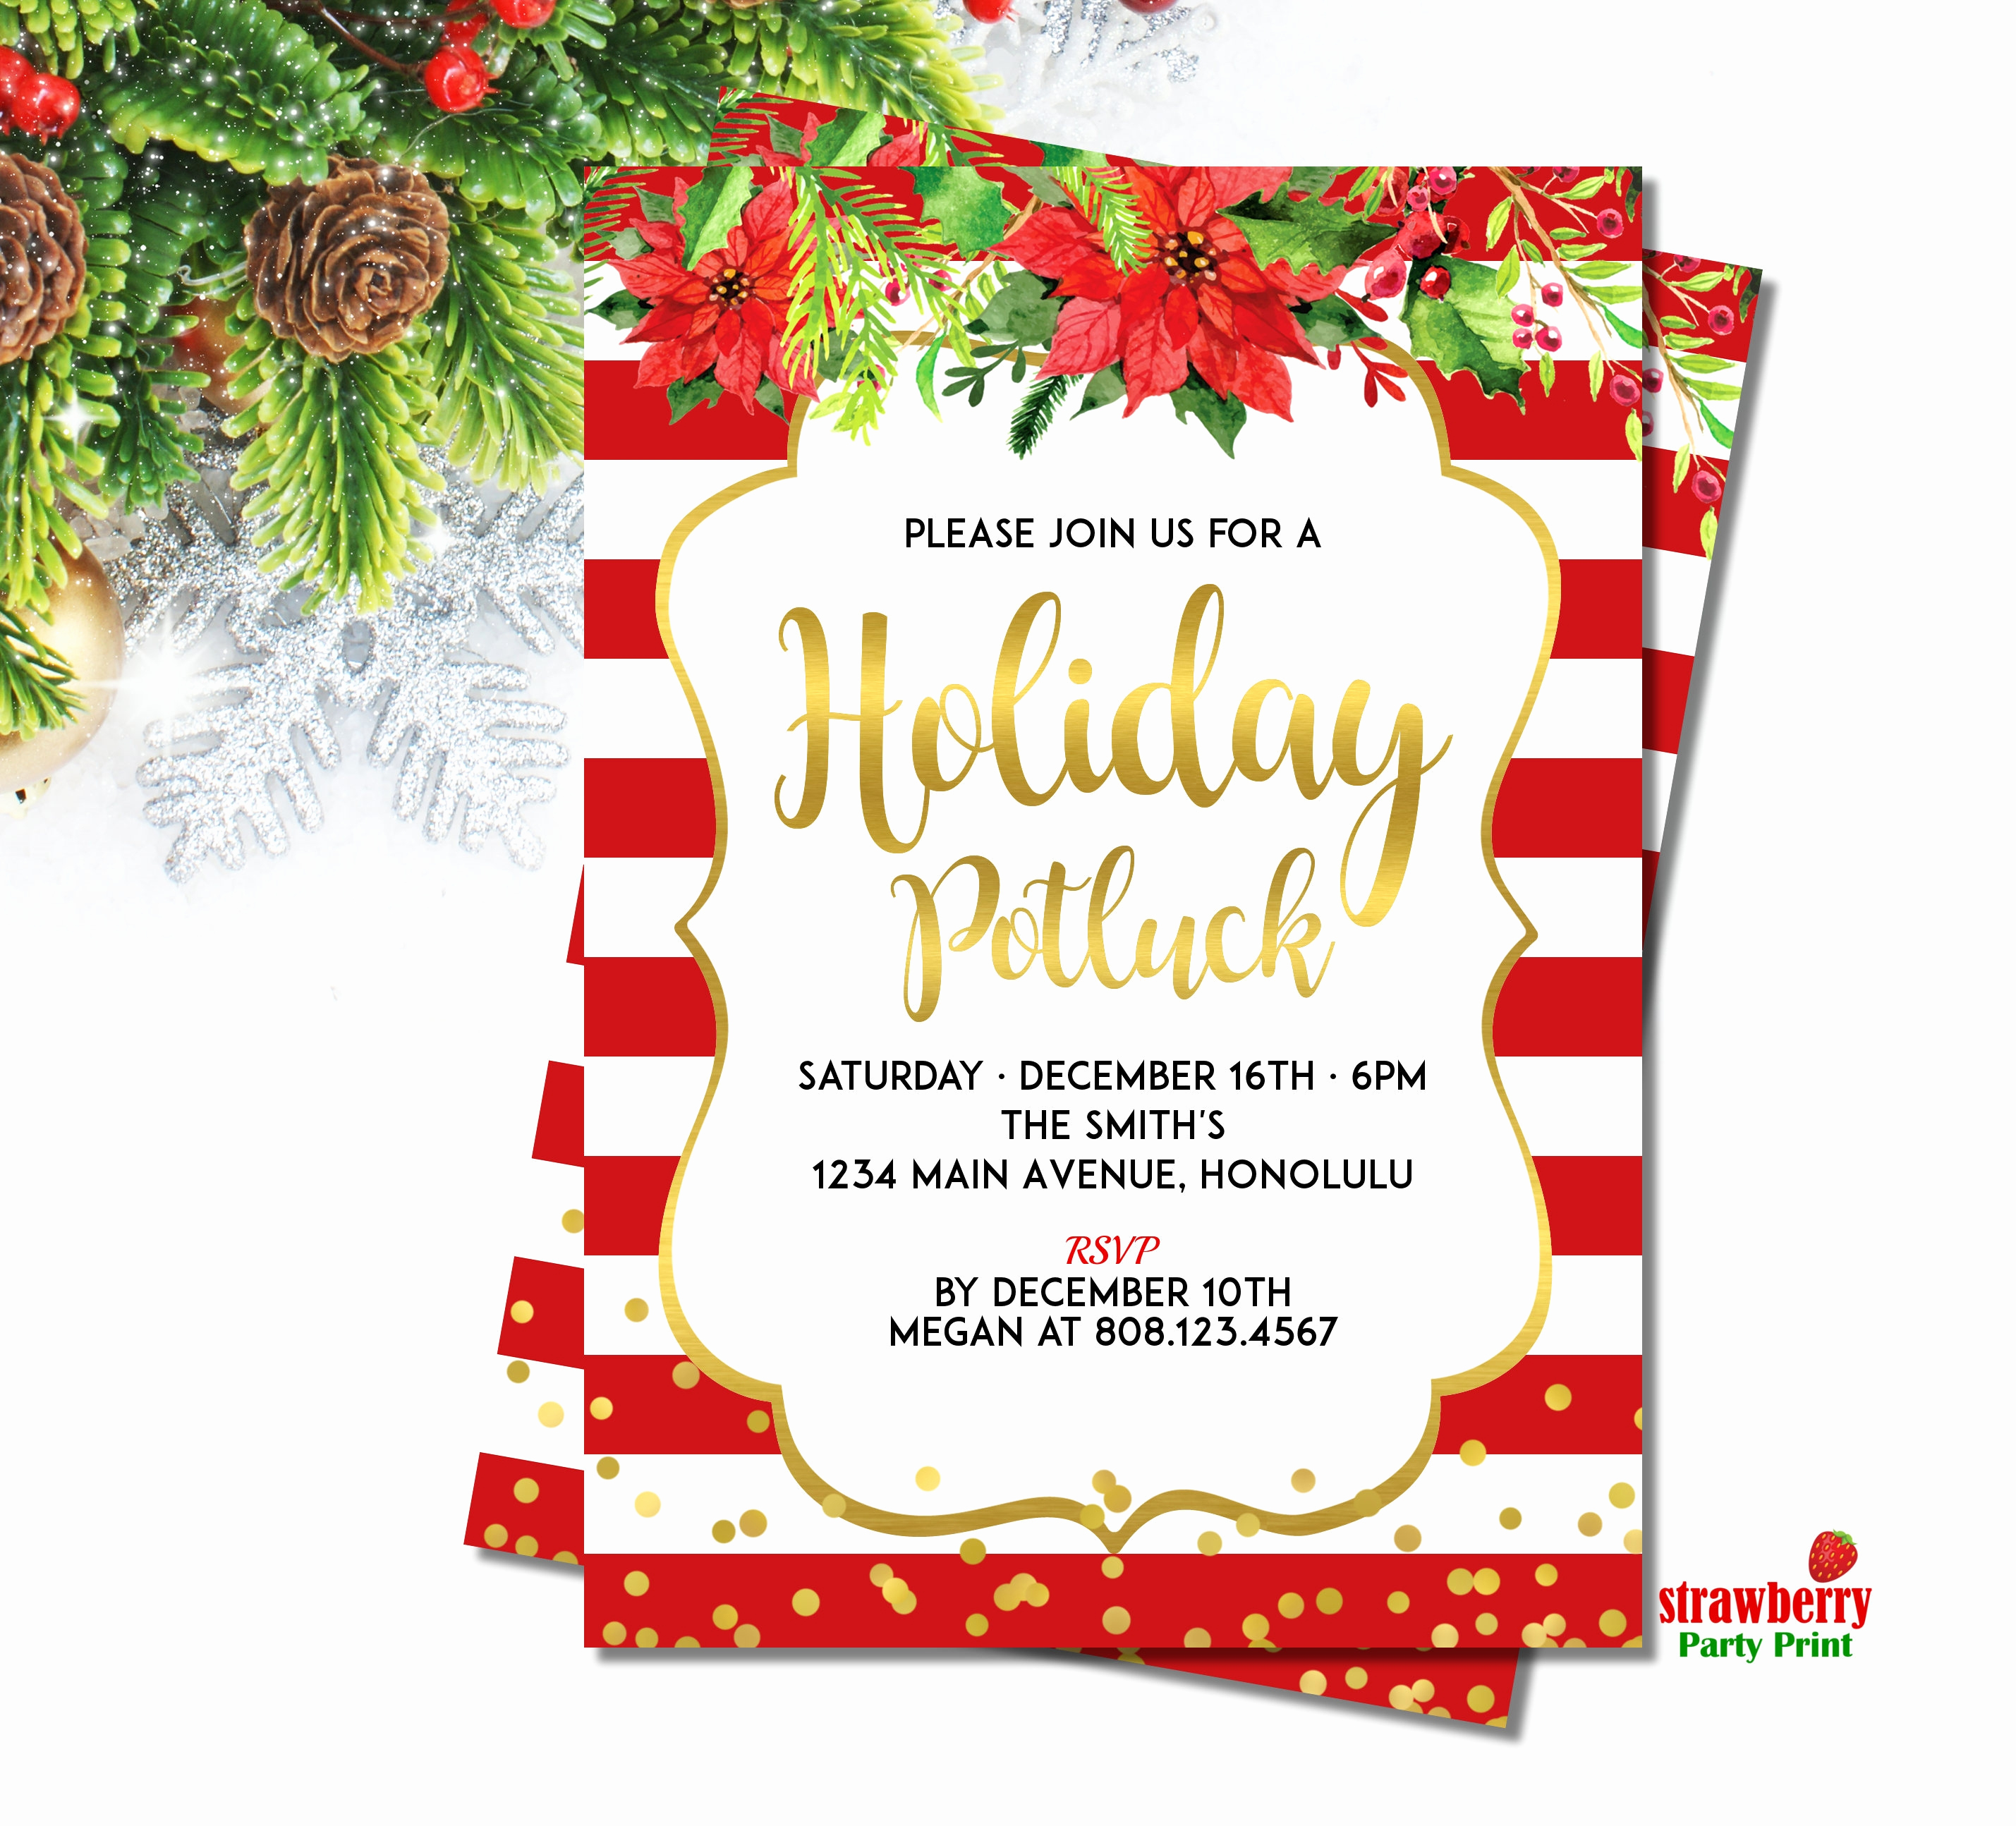 Holiday Potluck Invitation Wording Lovely 19 Fice Potluck Invitation Fice Party Invitation 7